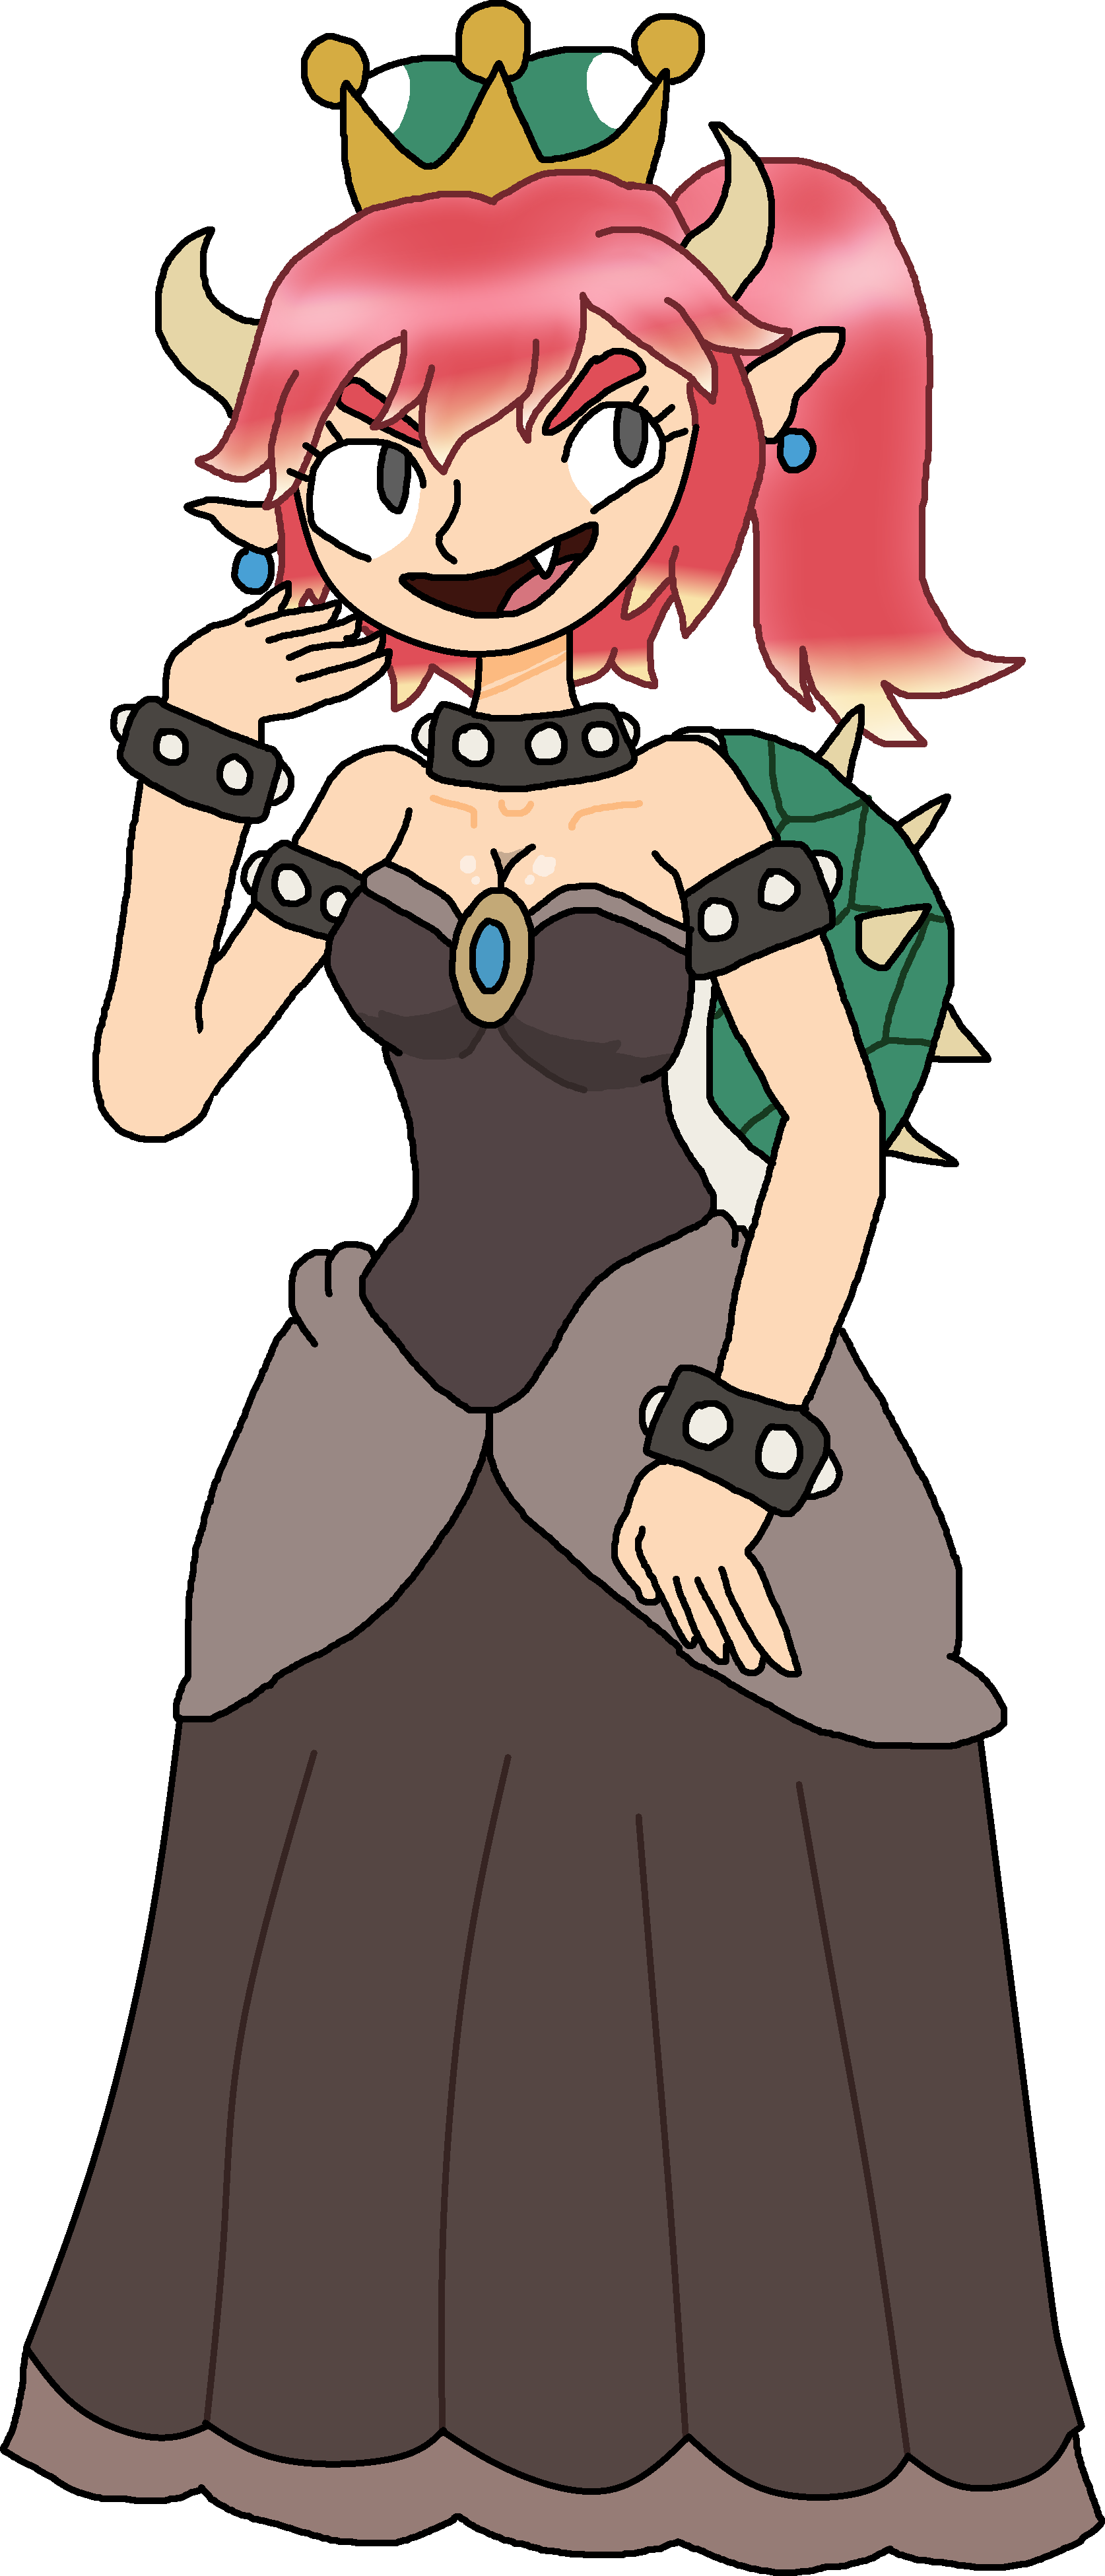 Princess Bowser